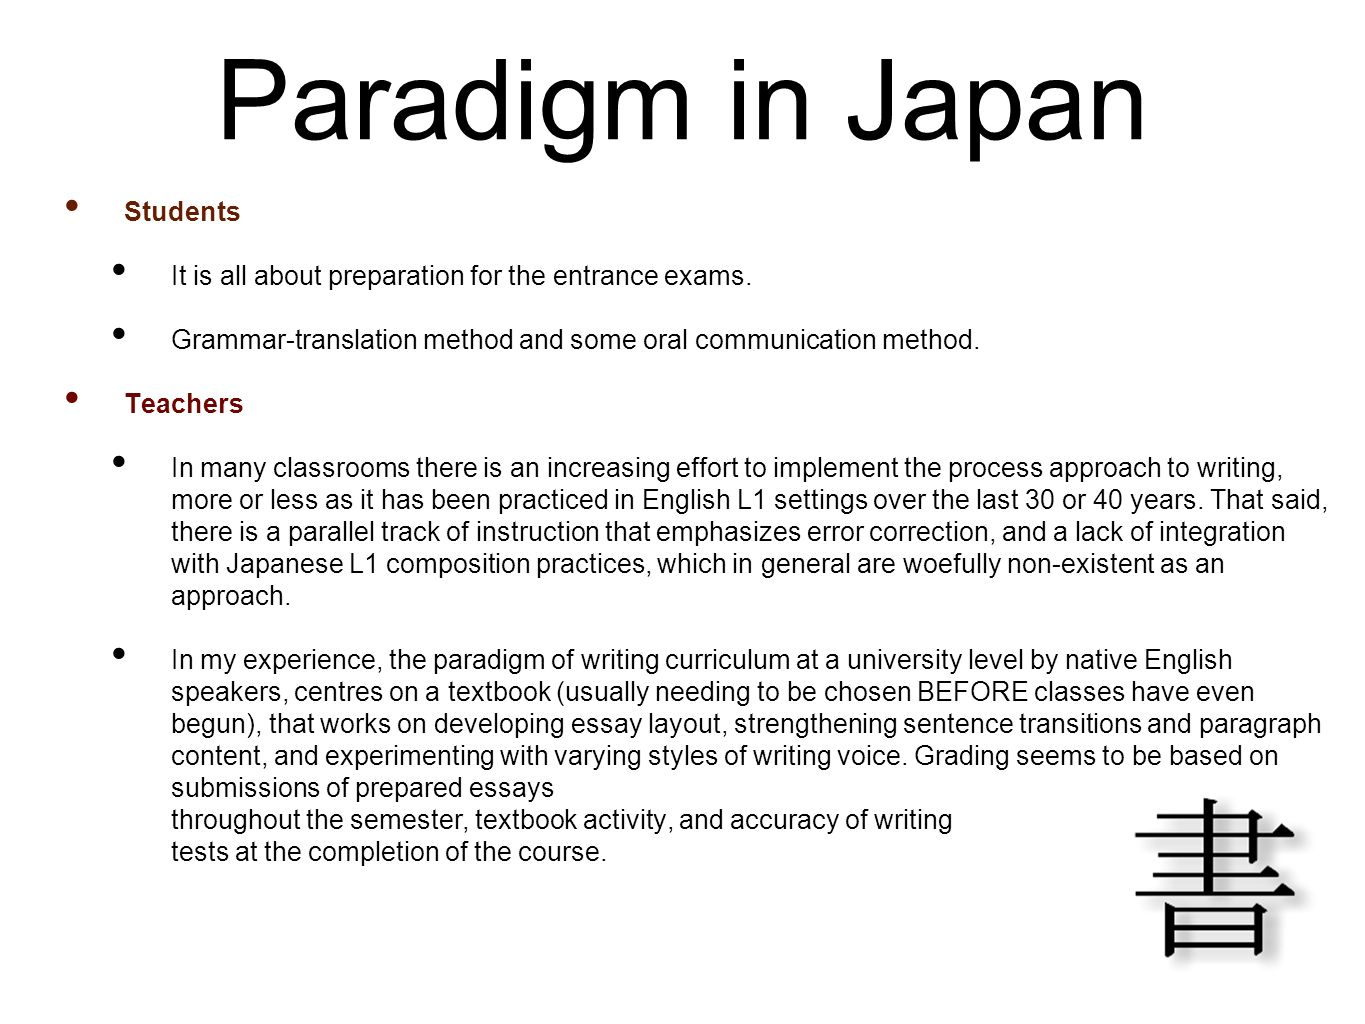 Paradigm in Japan Students It is all about preparation for the entrance exams. Grammar-translation method and some oral communication method. Teachers